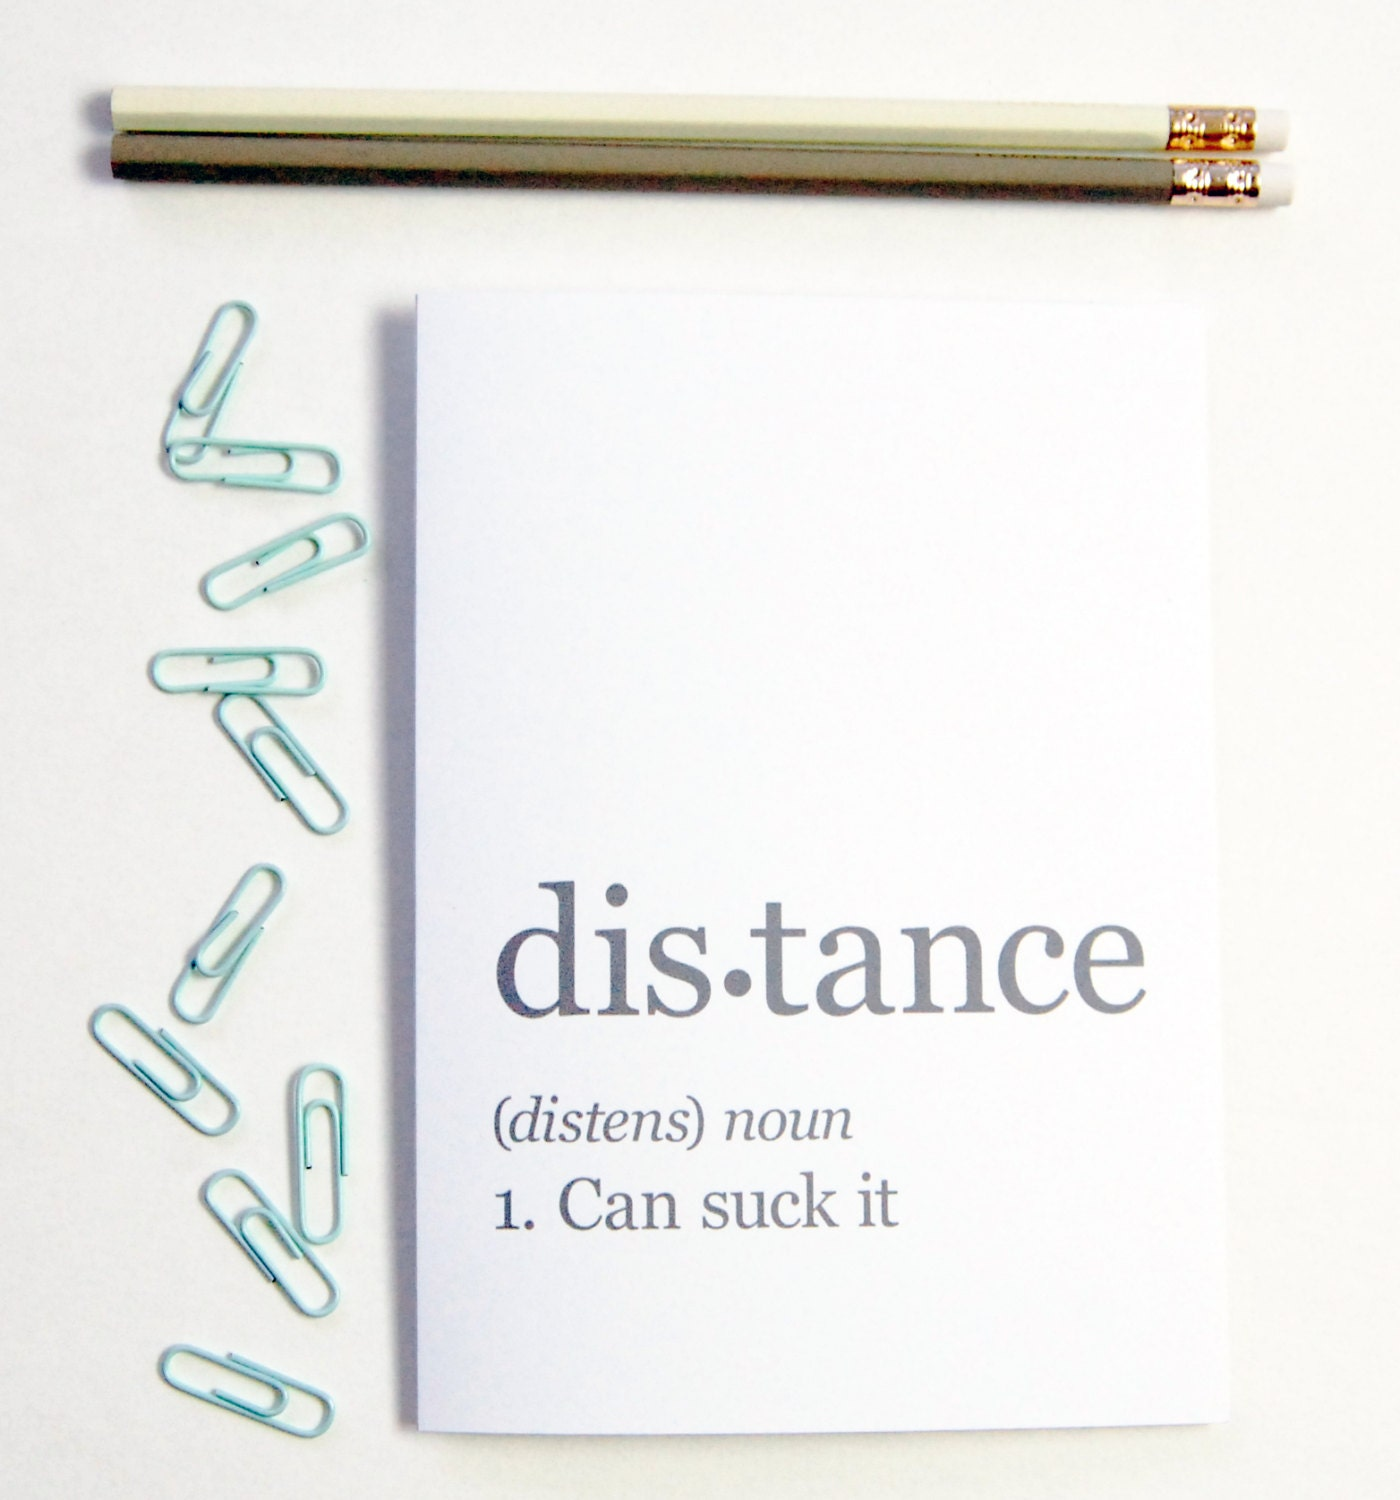 Distance definition greeting card long distance boyfriend zoom kristyandbryce Image collections